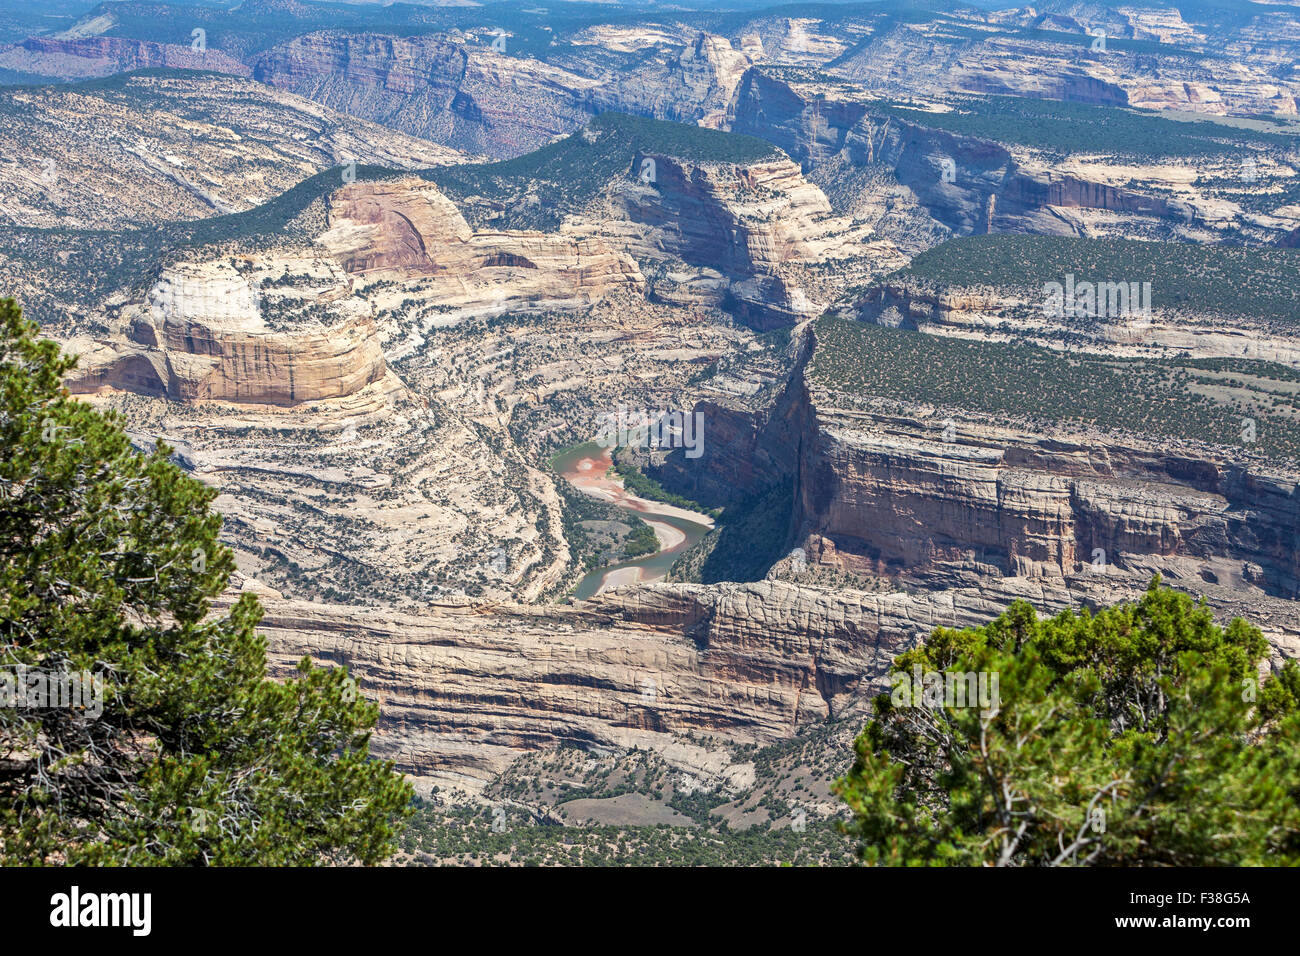 A view of Echo Park in Dinosaur National Park, Utah. - Stock Image